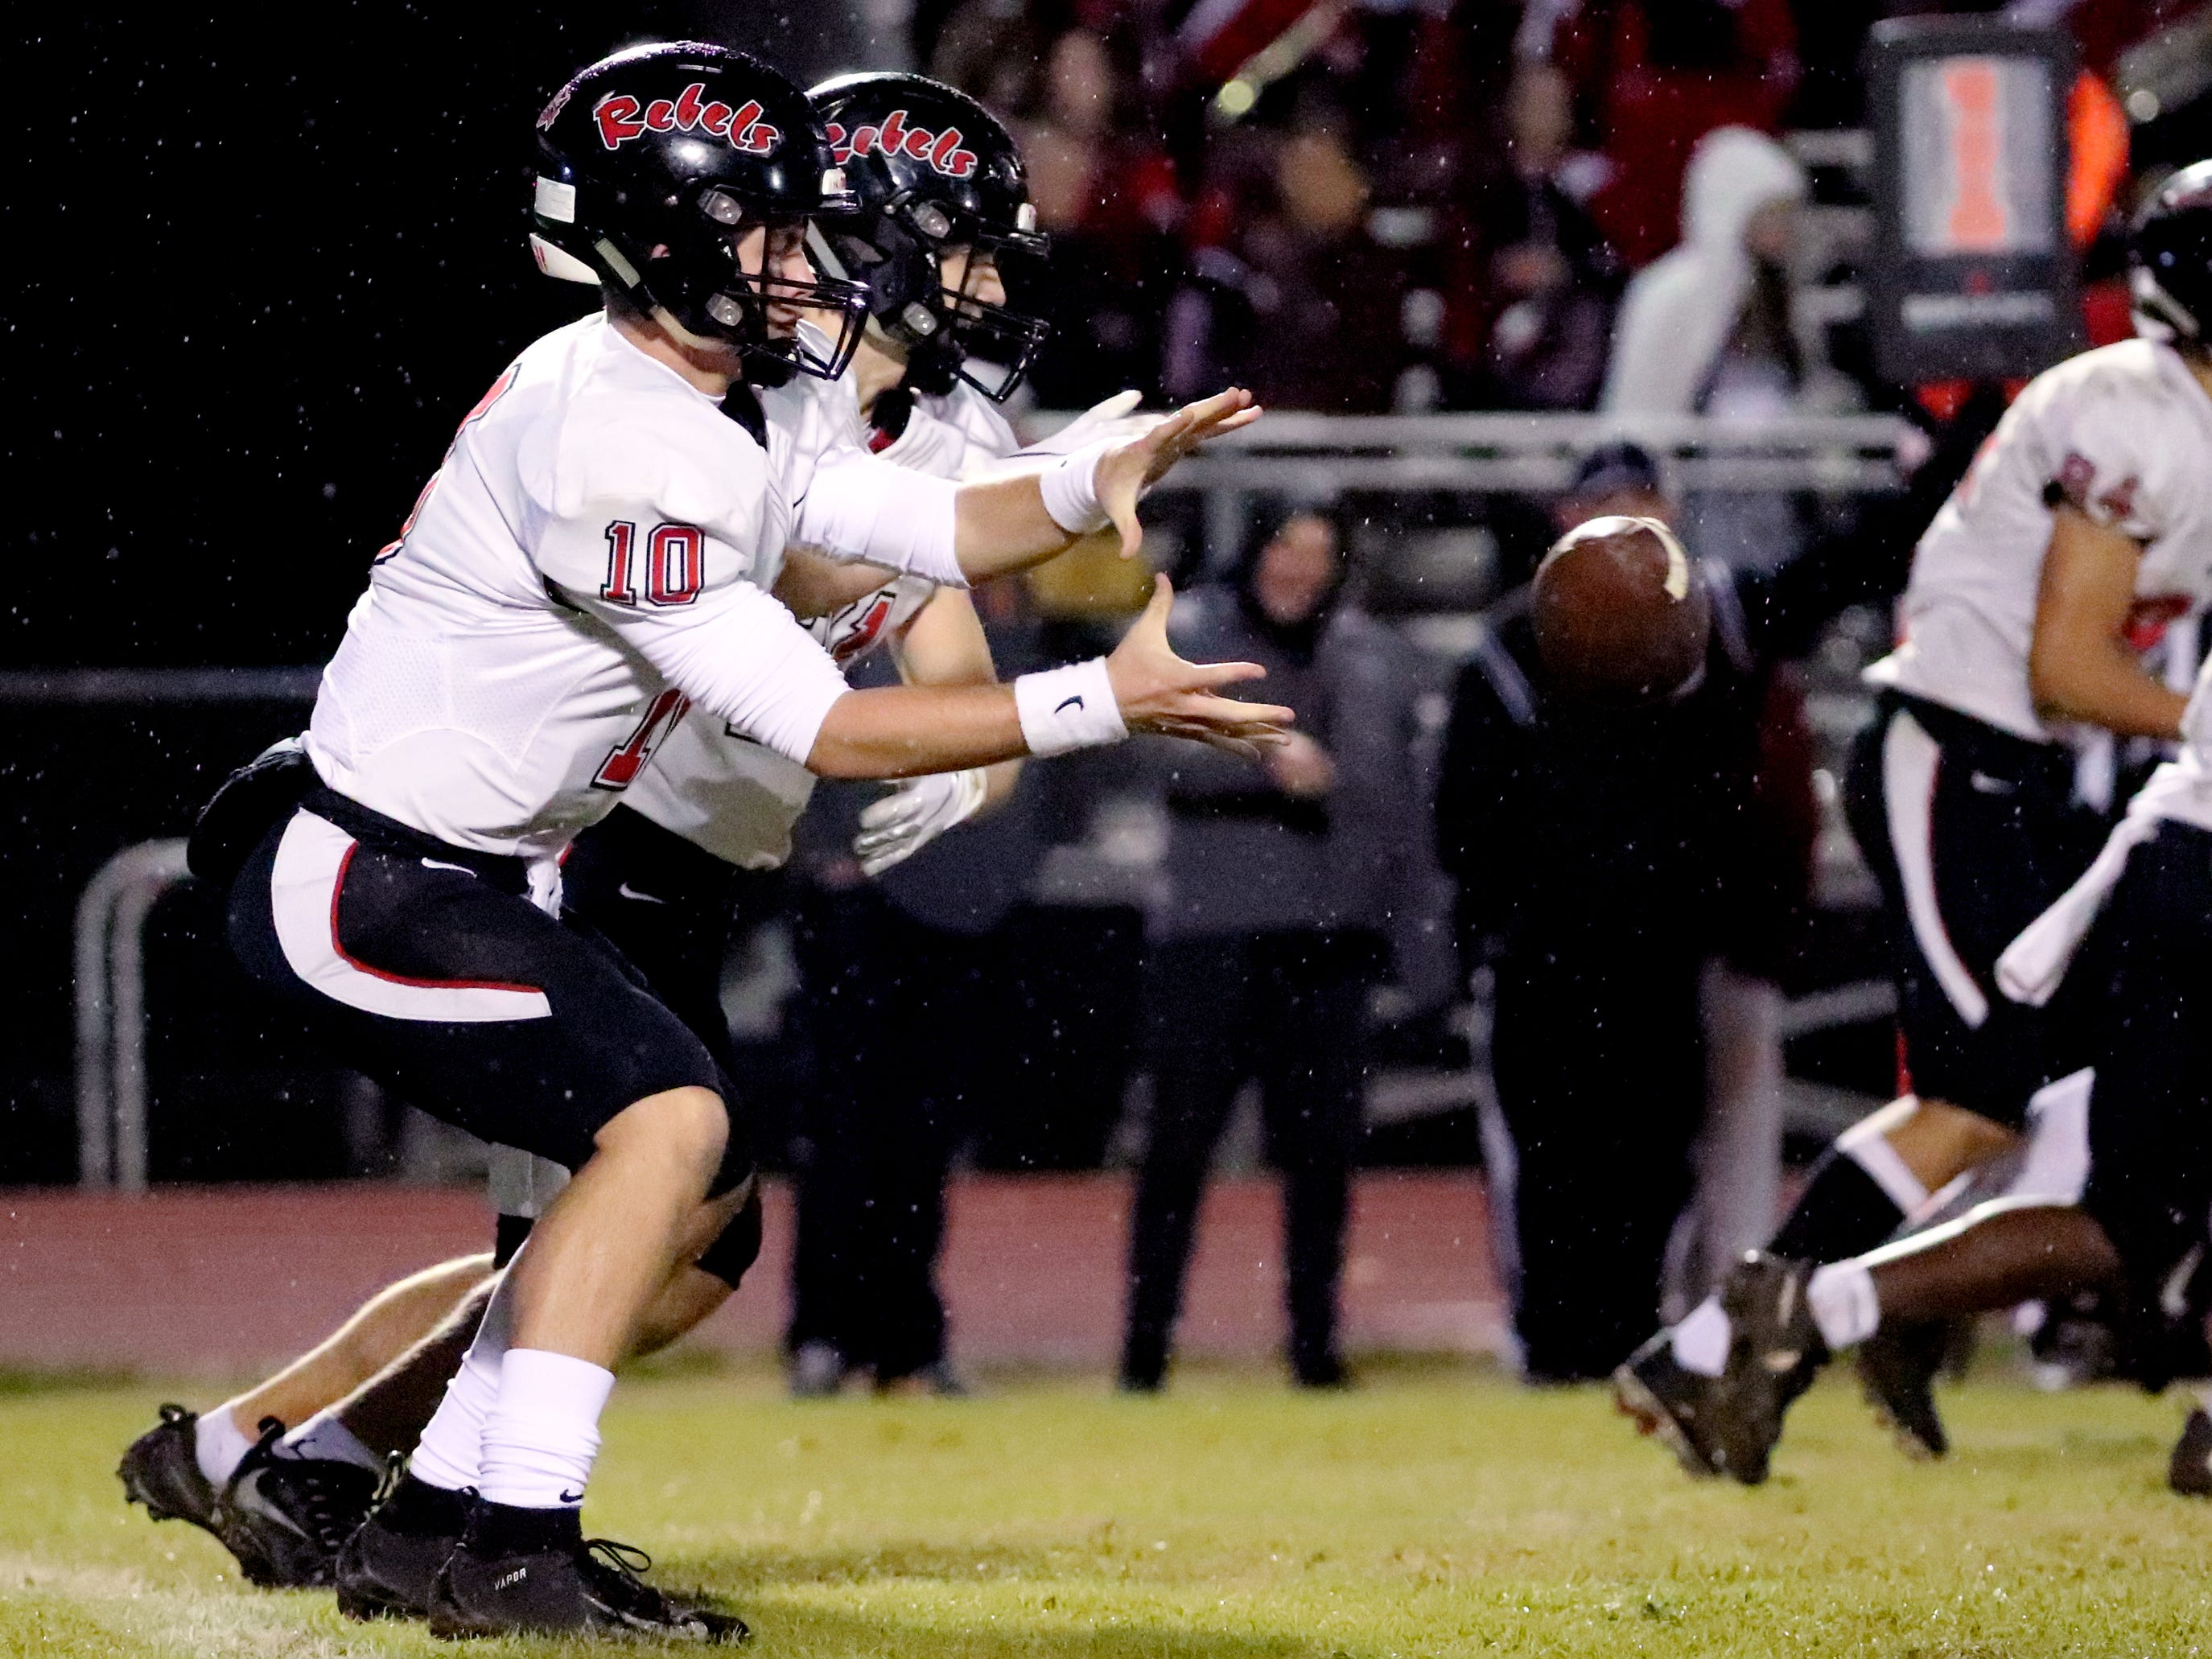 Maryville's quarterback (10) grabs a snap at Oakland in Murfreesboro, on Friday, Aug. 23 2018, during the 6A playoffs against Oakland.